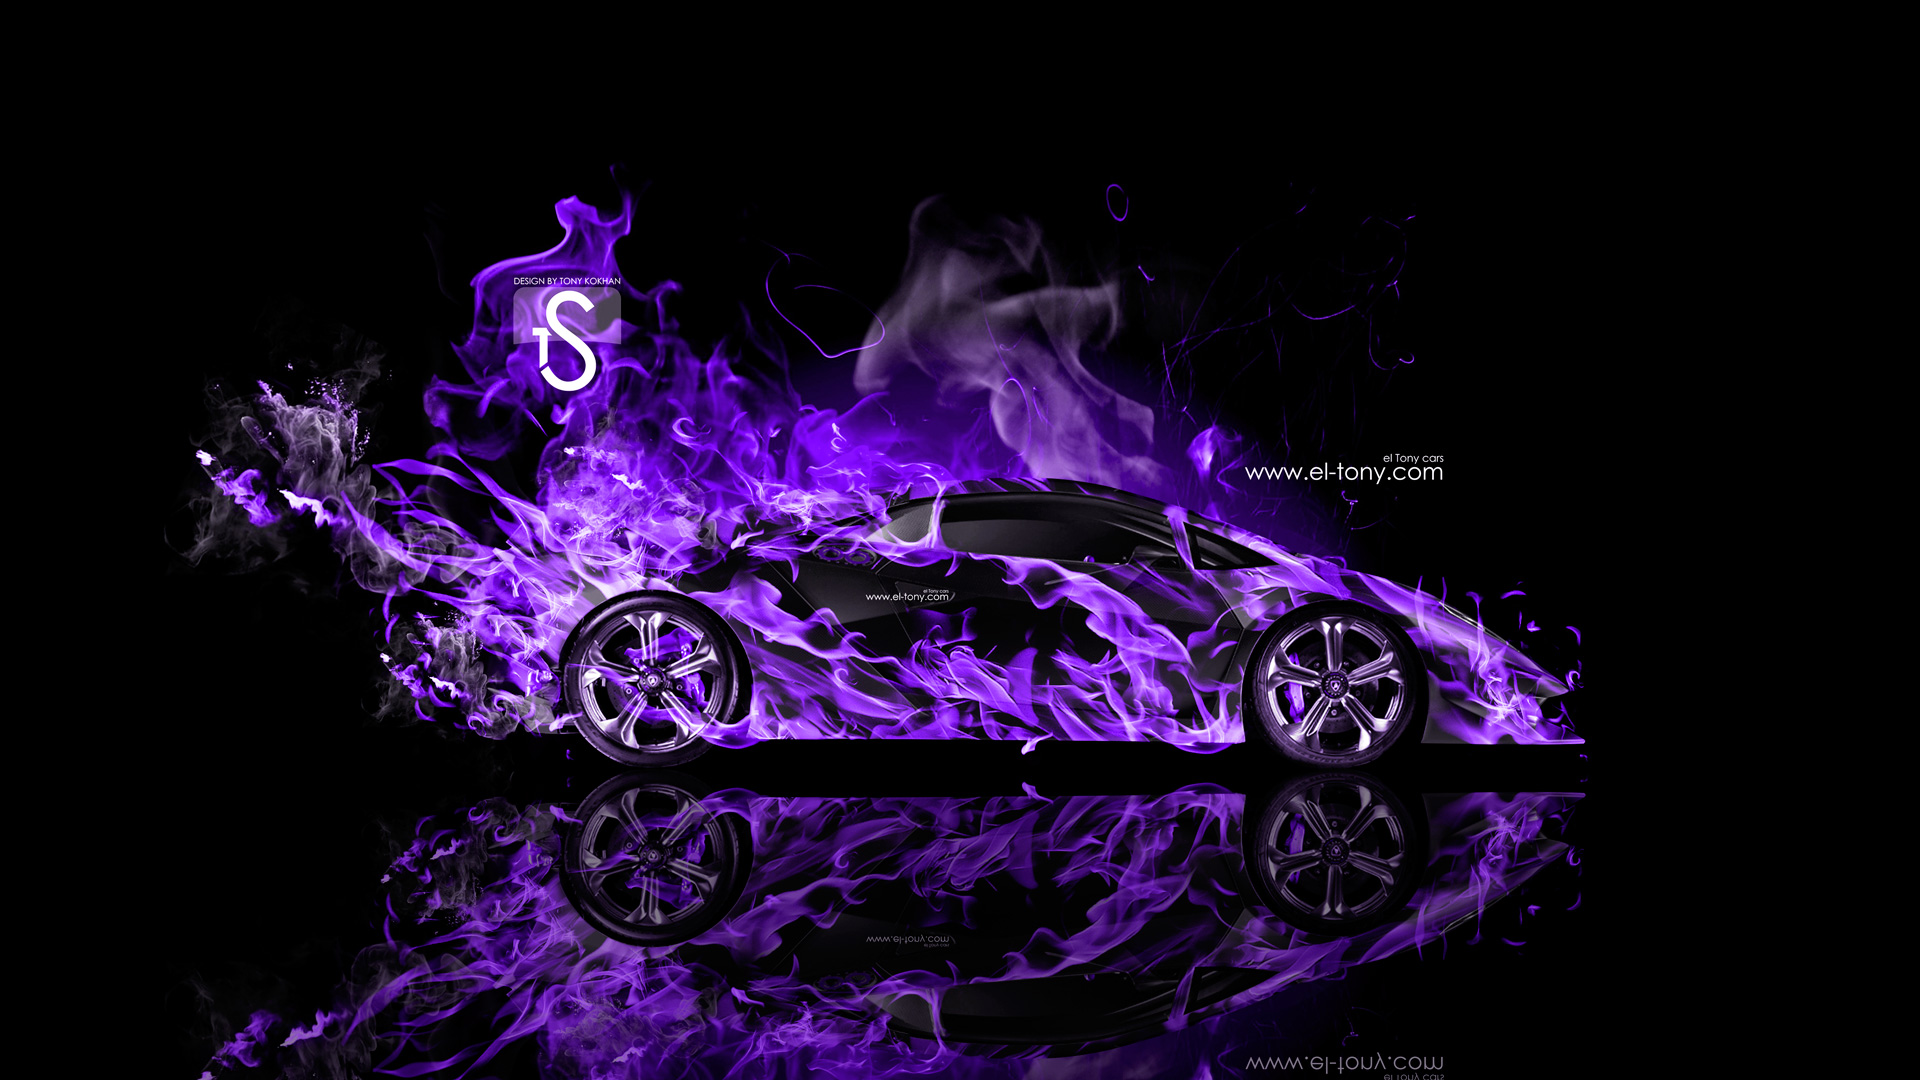 Lamborghini Sesto Elemento Fire Abstract Car 2014 | el Tony